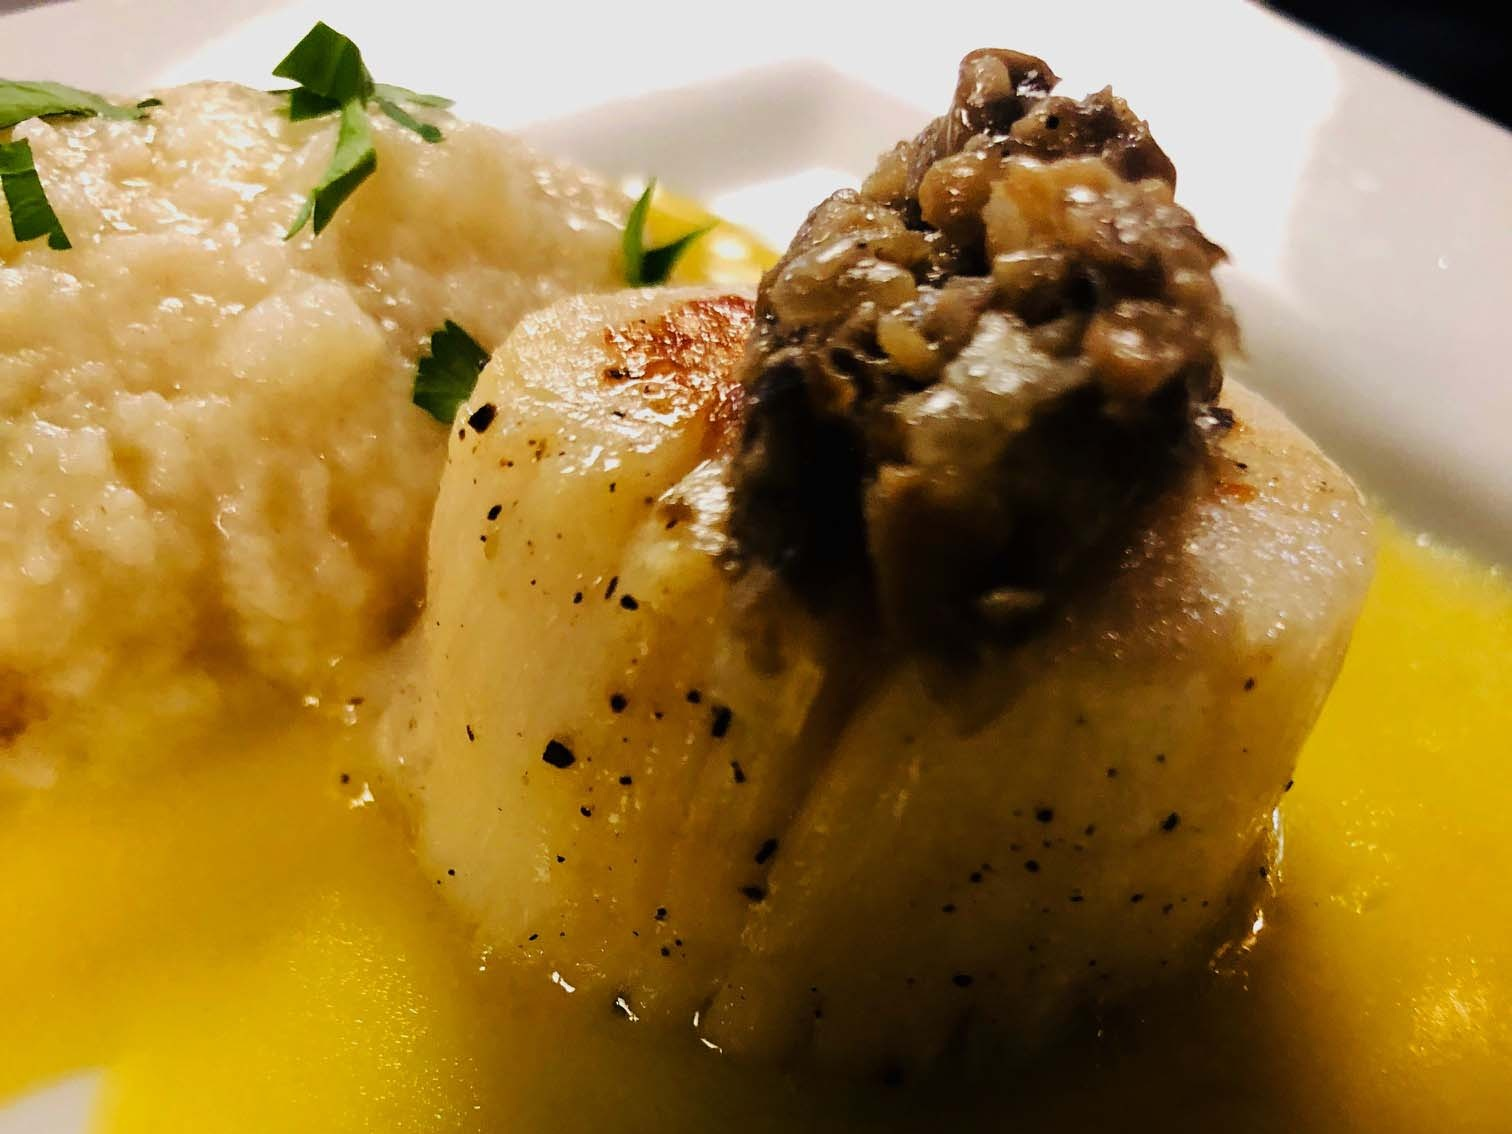 Pan seared scallop with a duxelle of mushroom, pike quenelle and a saffron beurre blanc